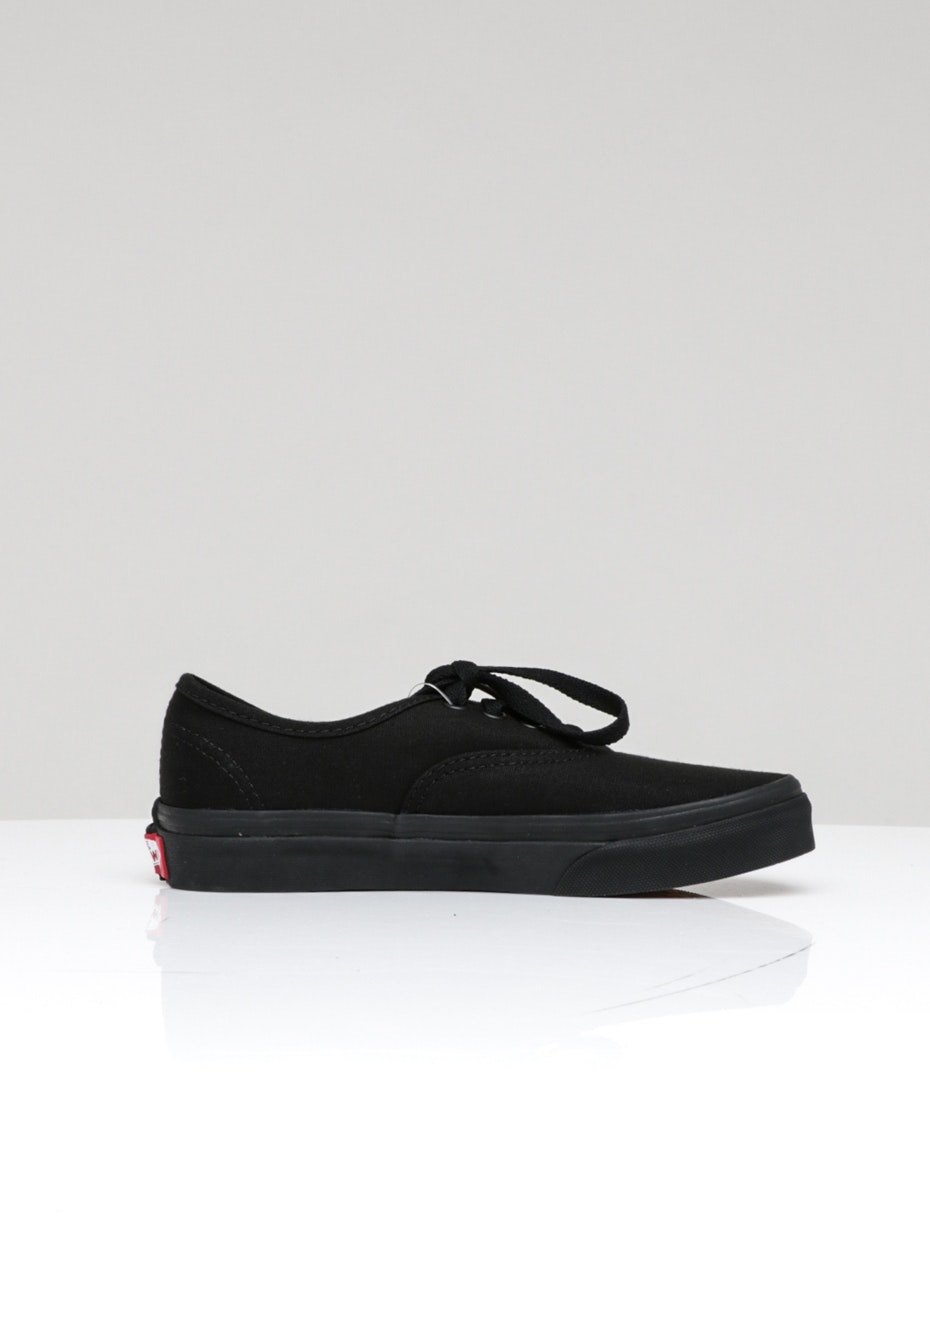 VANS - KIDS AUTHENTIC JR S216 - Black/Black